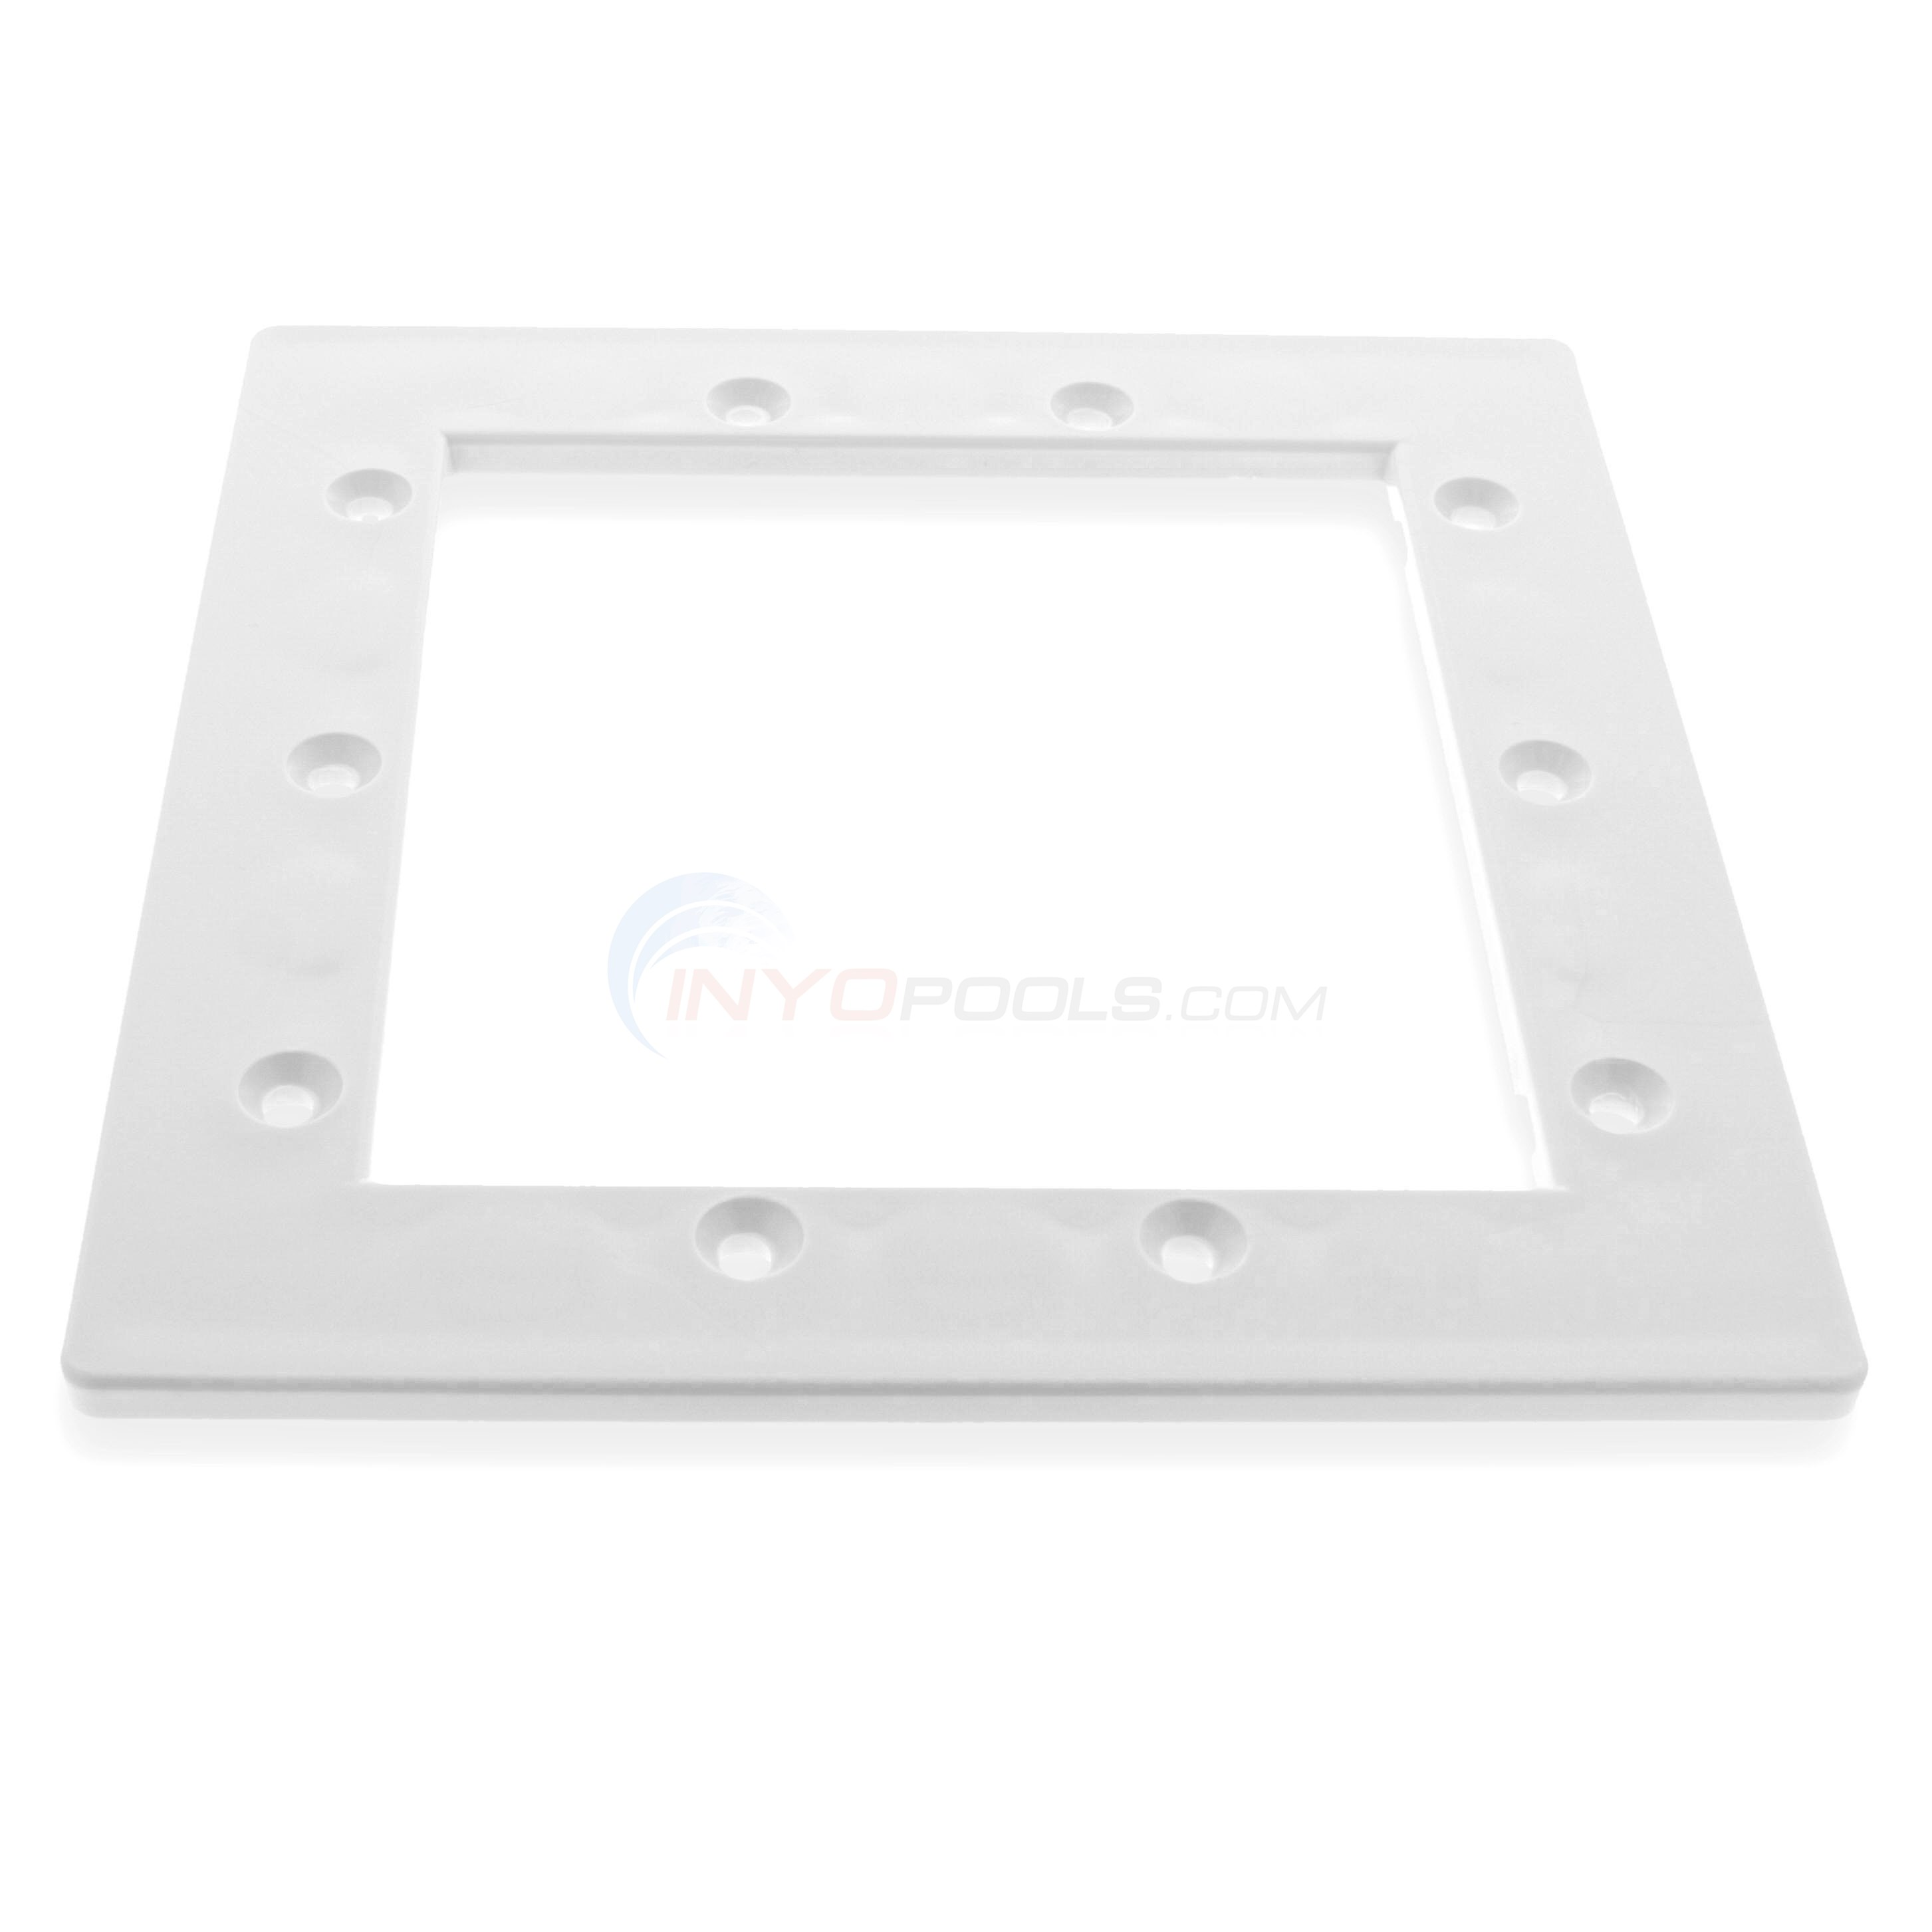 "No Longer Available FACE PLATE Replace With <a class=""productlink"" href=""http://www.inyopools.com/Products/07501352025542.htm"">4031-070</a>"